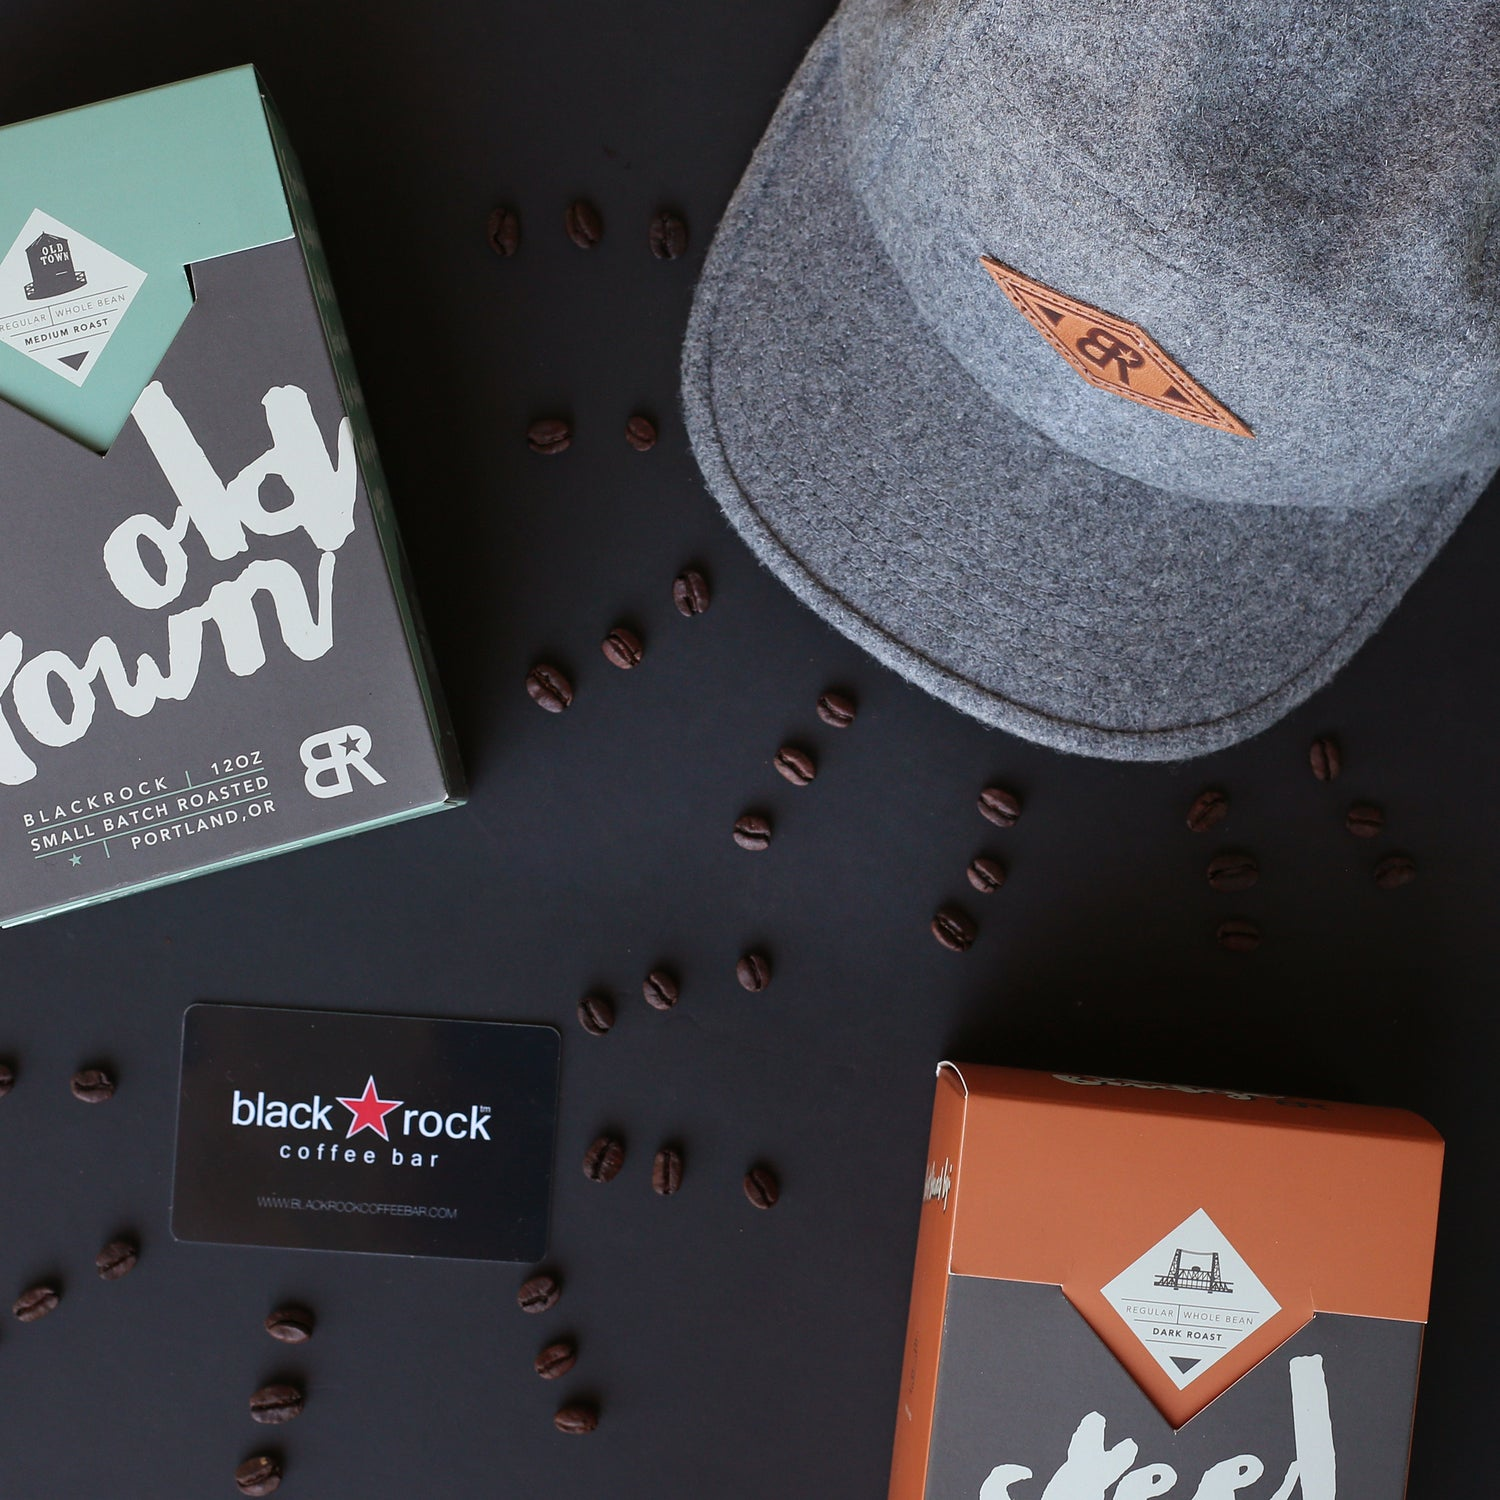 Black Rock In-Store Gift Card